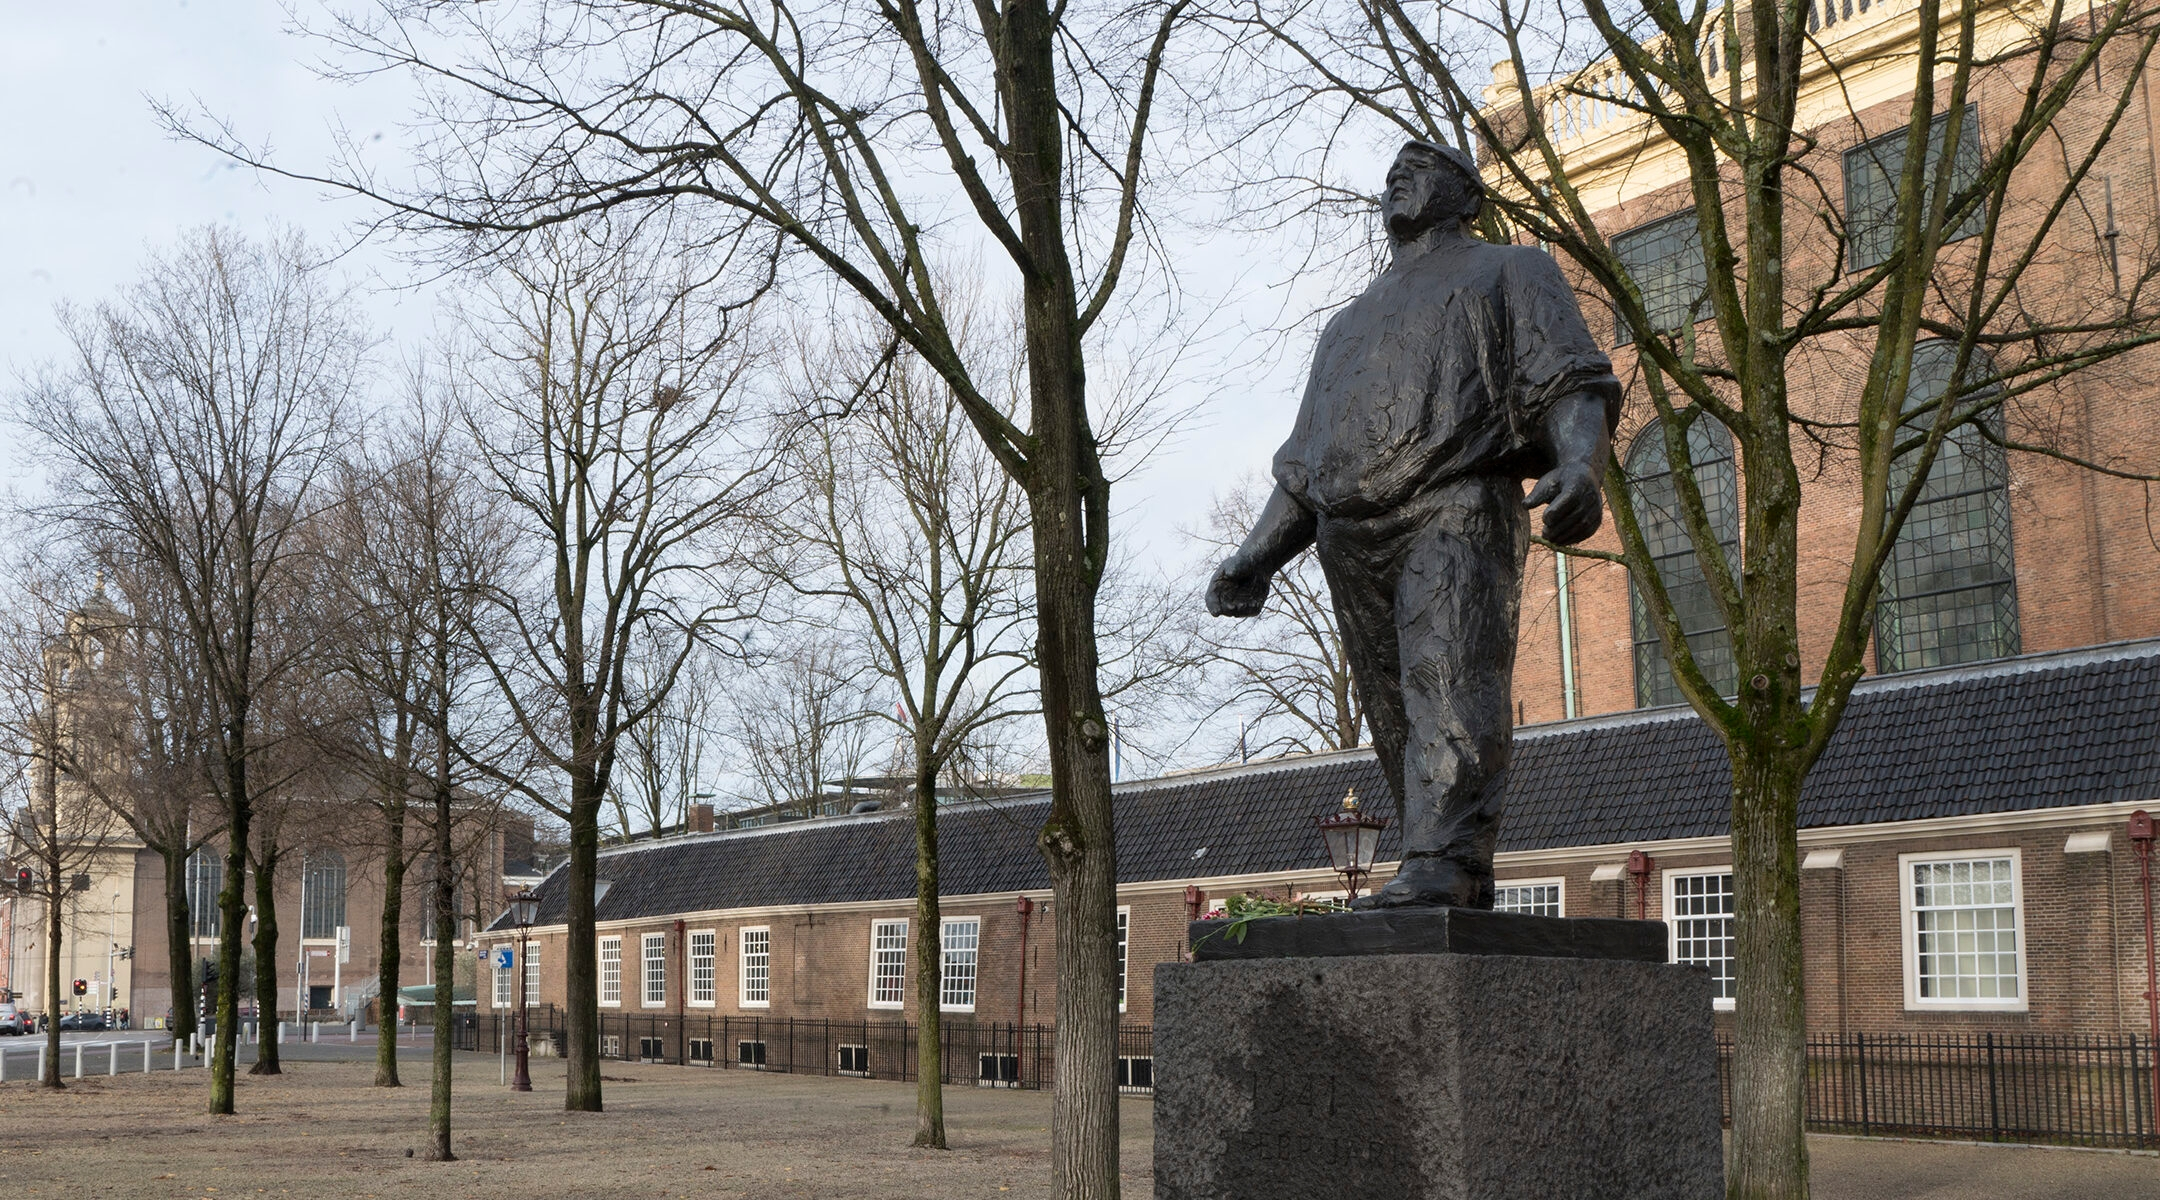 The Dock Worker, a statue that stands in front of the Portuguese synagogue, was inaugurated in 1952 to commemorate the participants of the 1941 February Strike in Amsterdam, the Netherlands. (Cnaan Liphshiz)